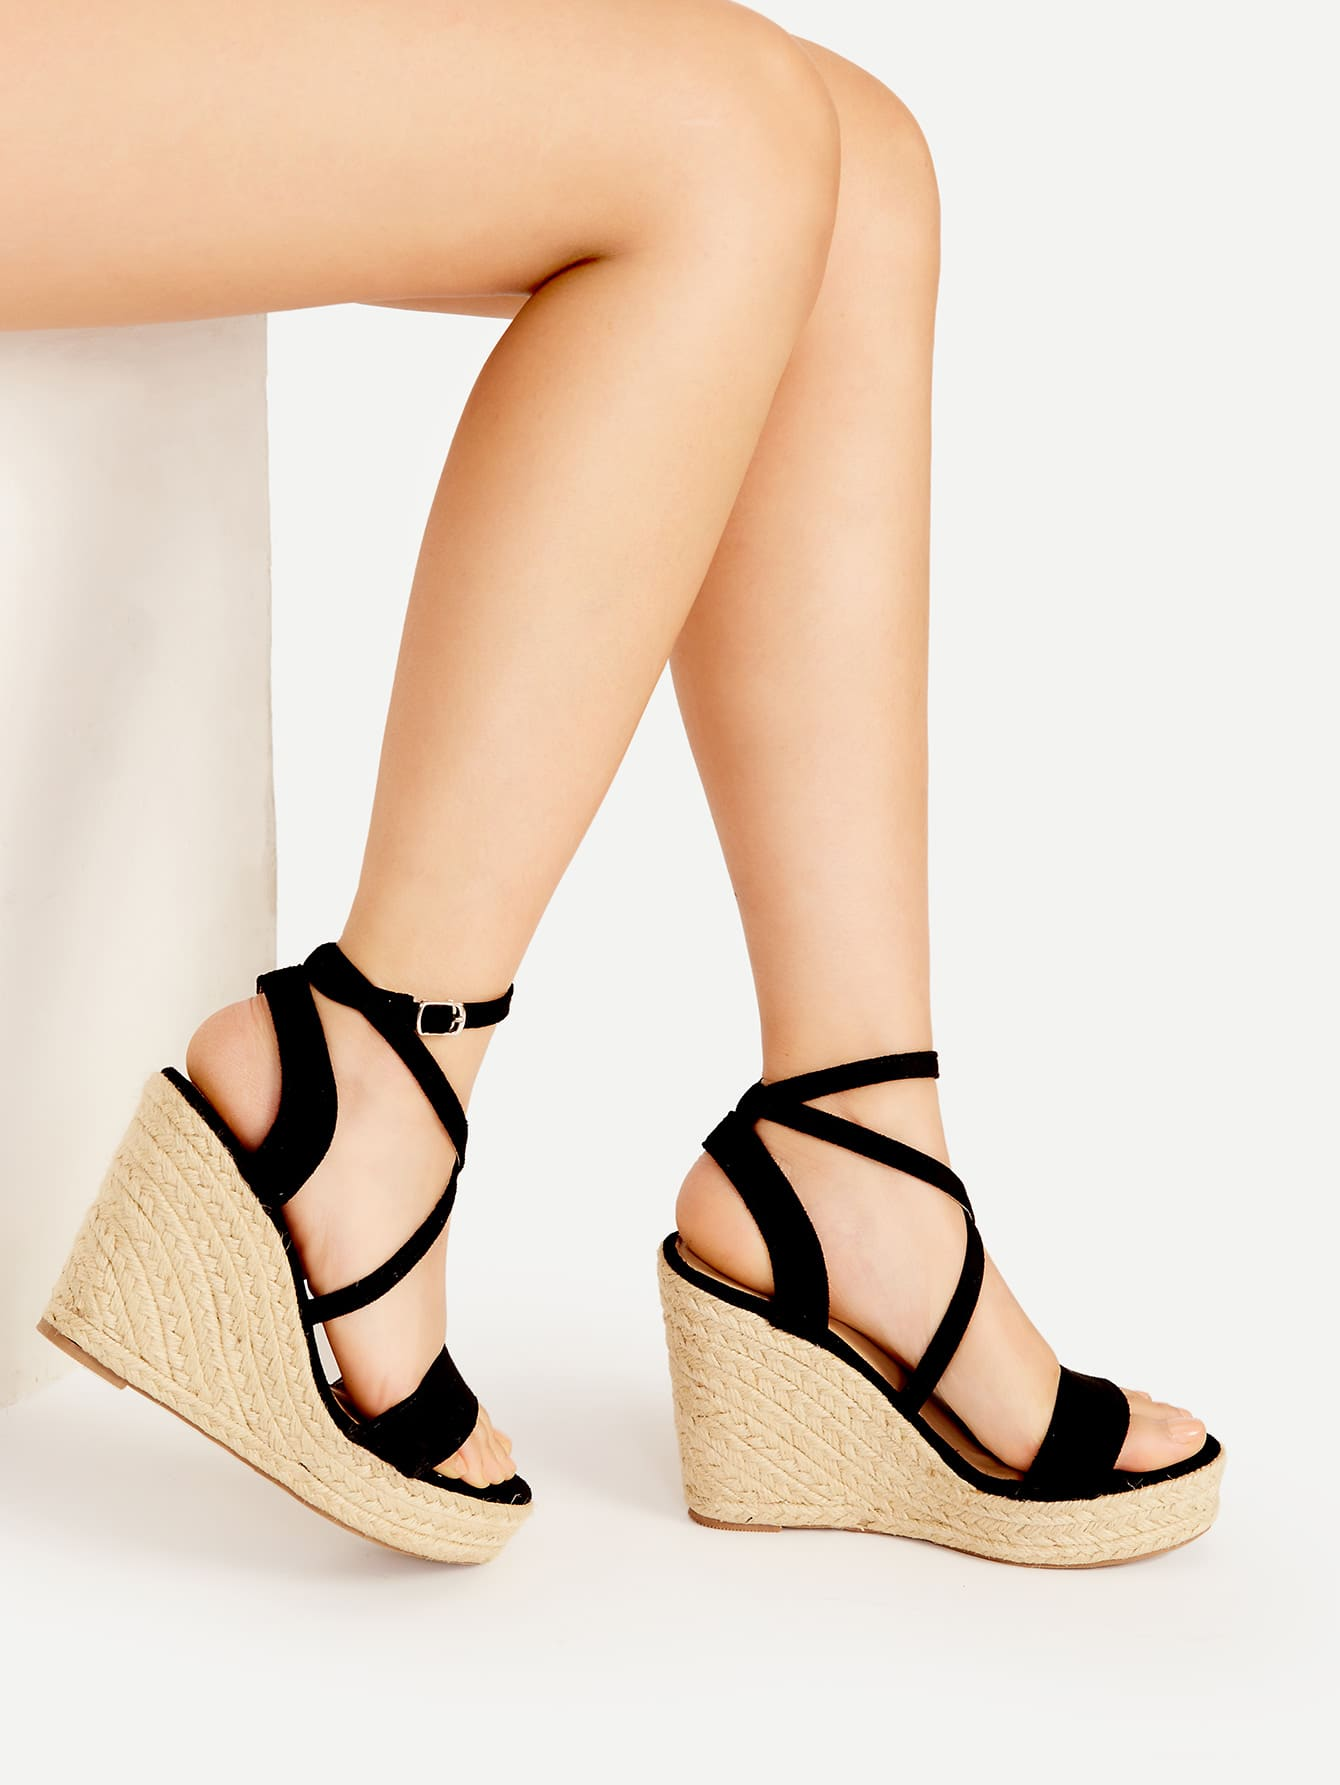 Fall Wedges Women S Shoes